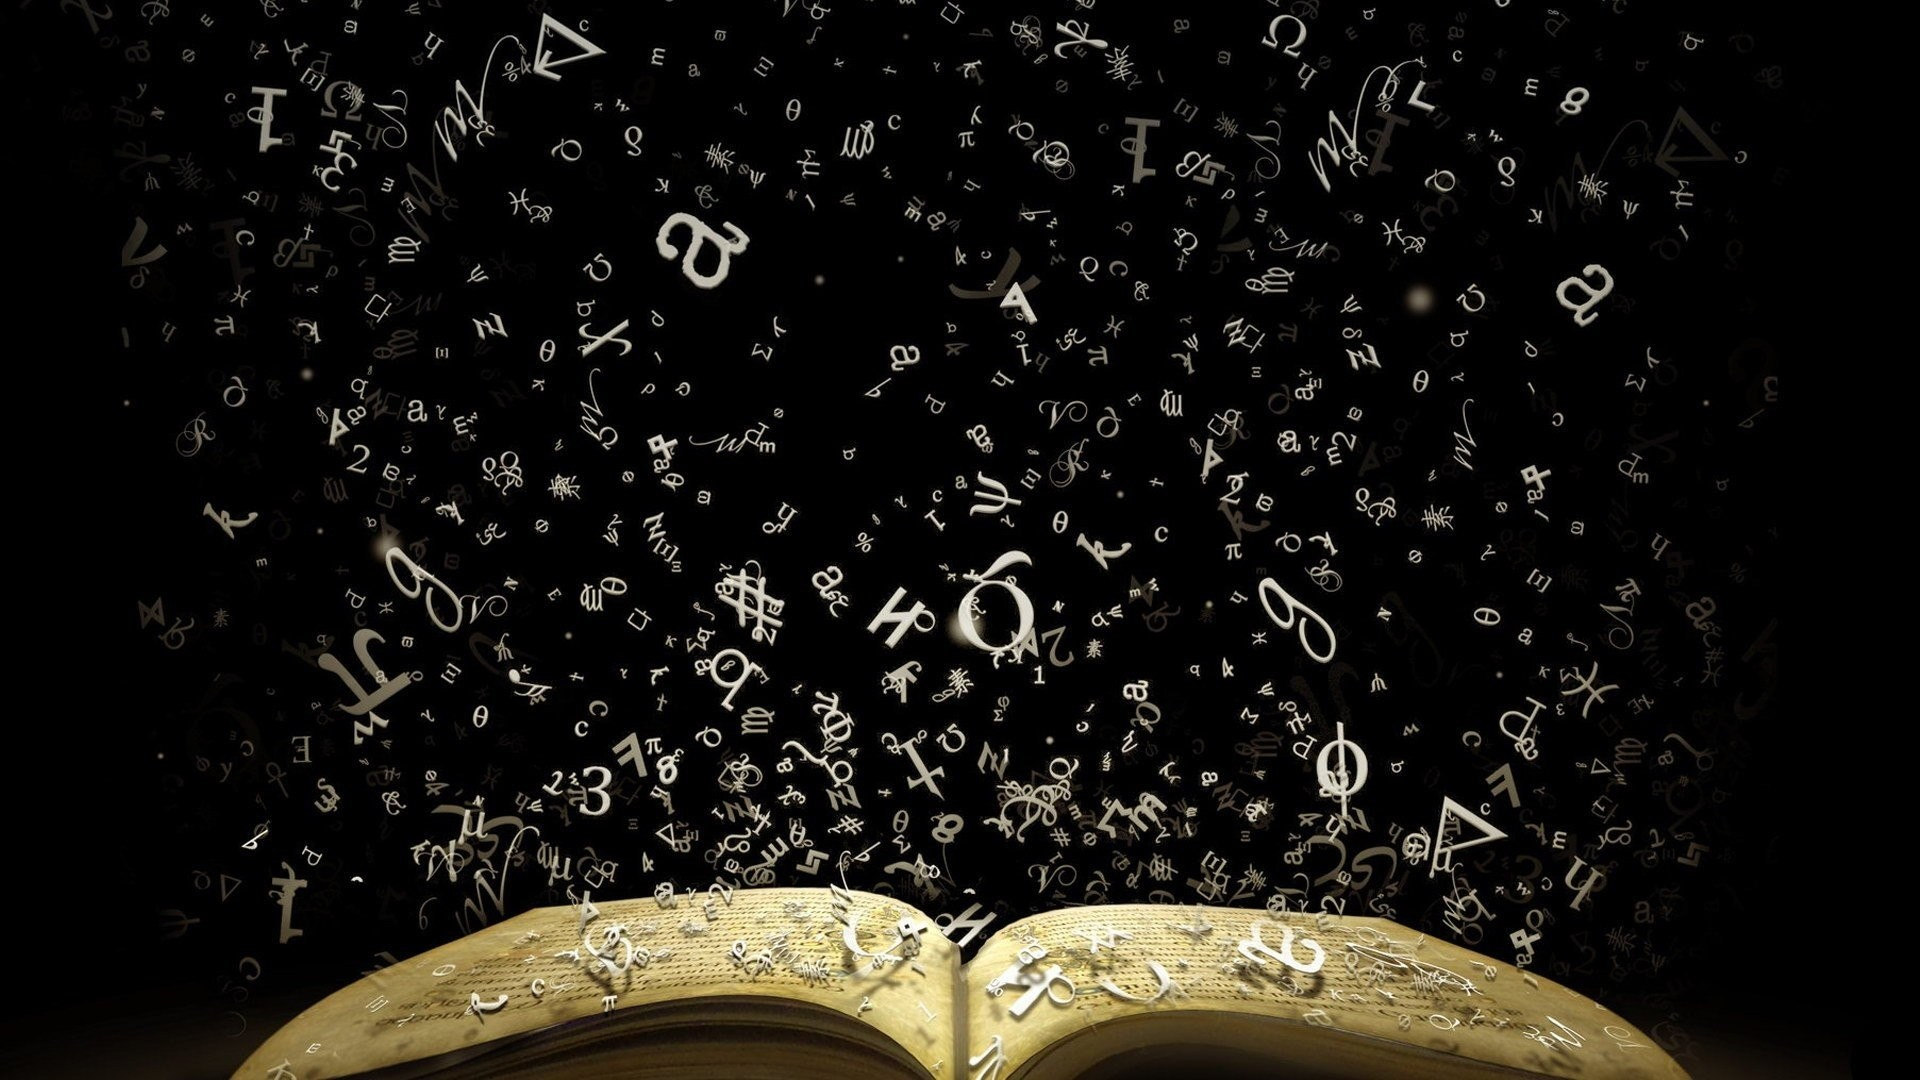 Res: 1920x1080, books, Literature, Numbers, Signs, Knowledge, Black background, Greek HD  Wallpapers / Desktop and Mobile Images & Photos